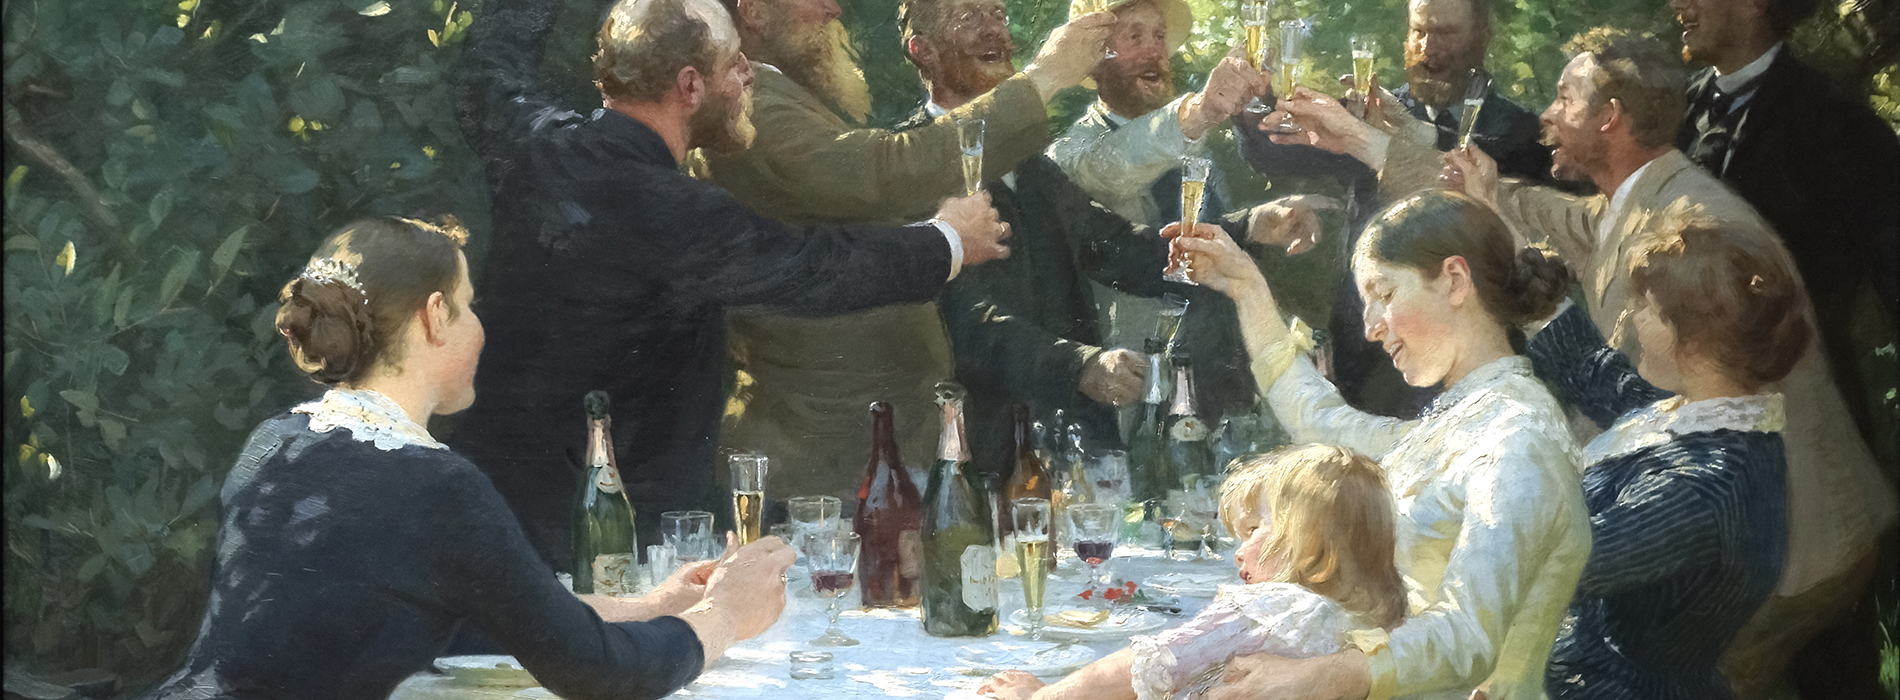 Convivial eating. Hipp hipp hurra. Painting by Peder Severin Krøyer